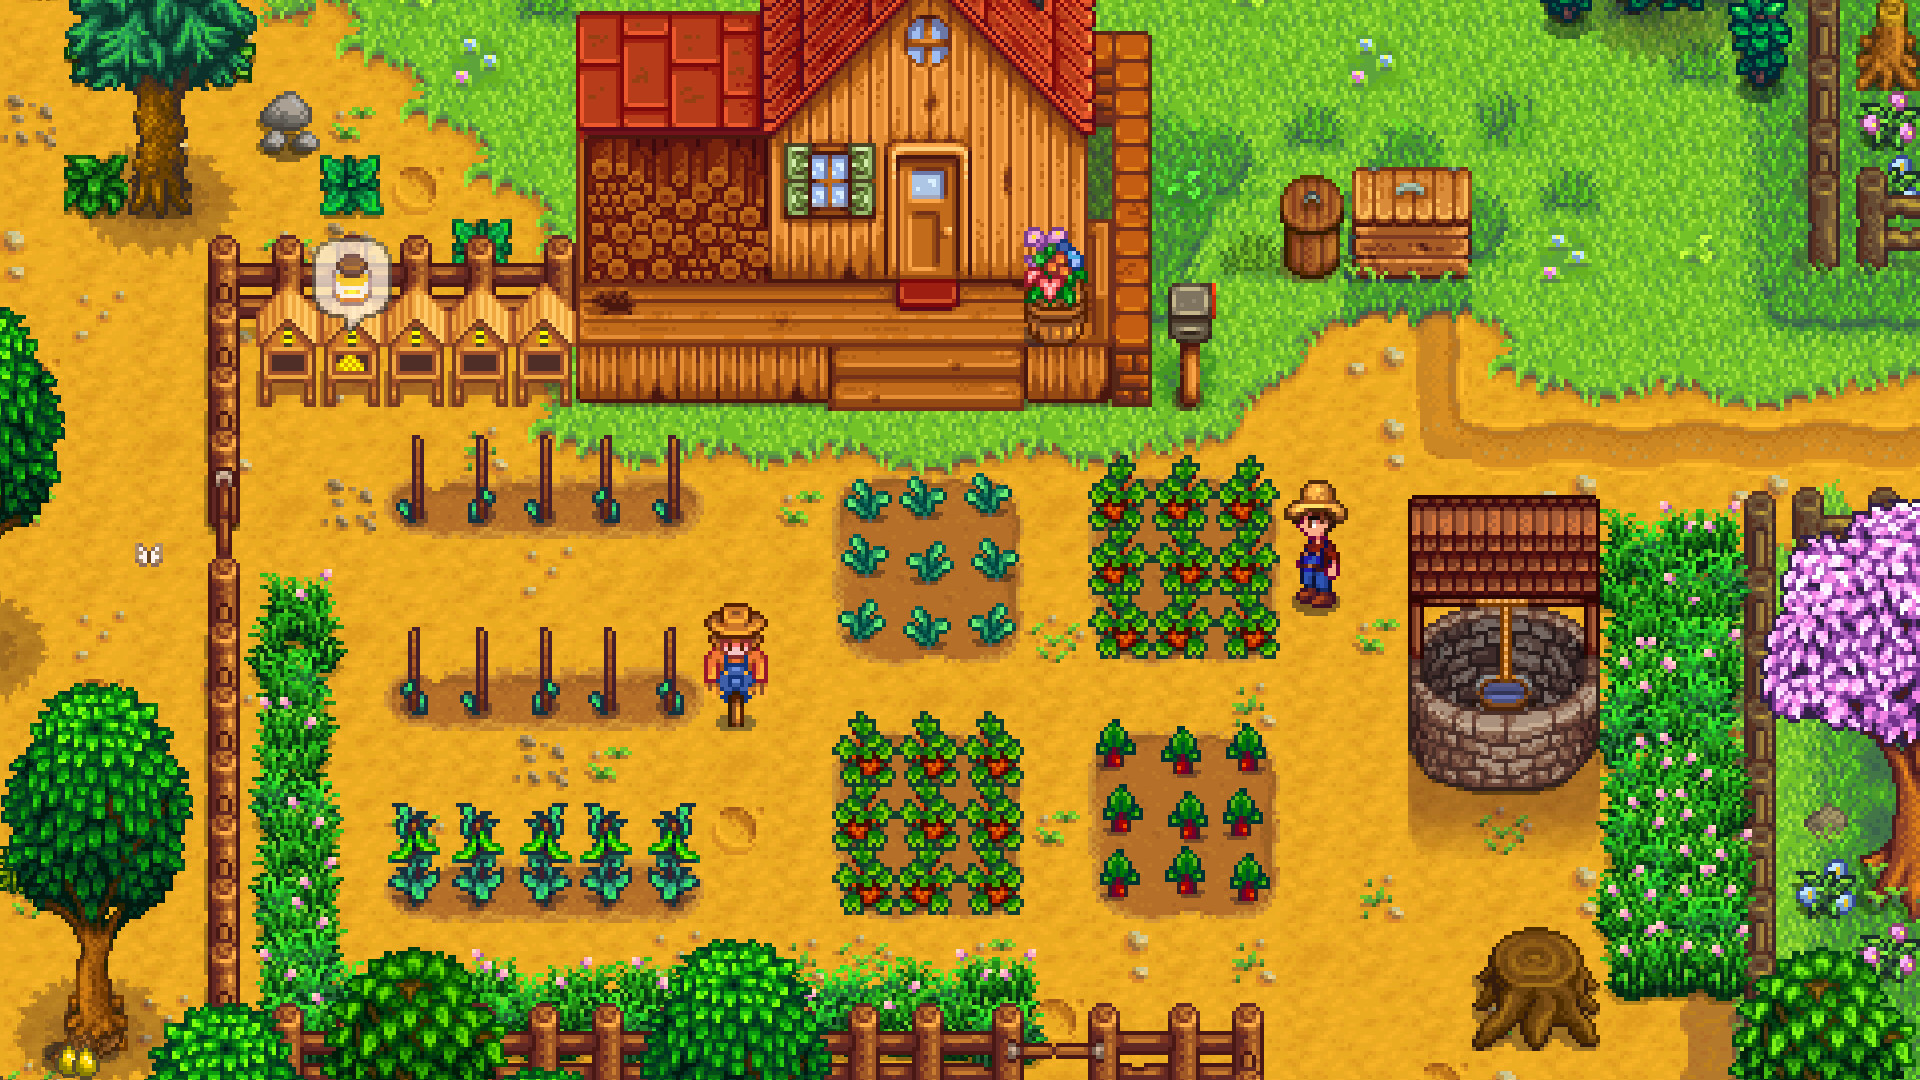 Over 10 million farmers have found their home at Stardew Valley